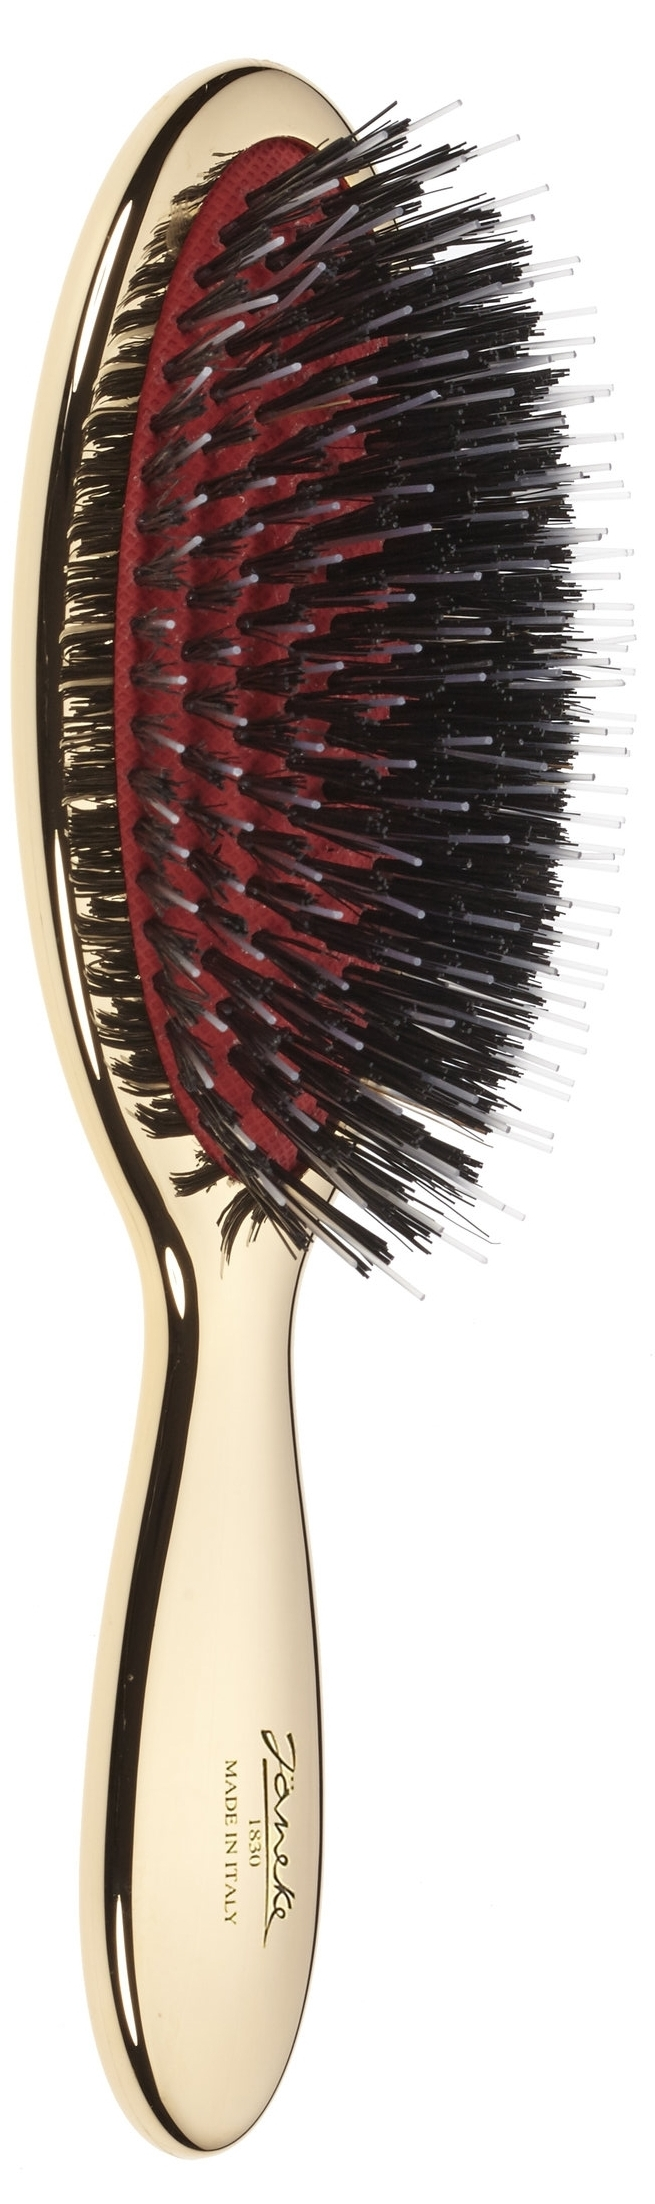 Janeke Gold Brush